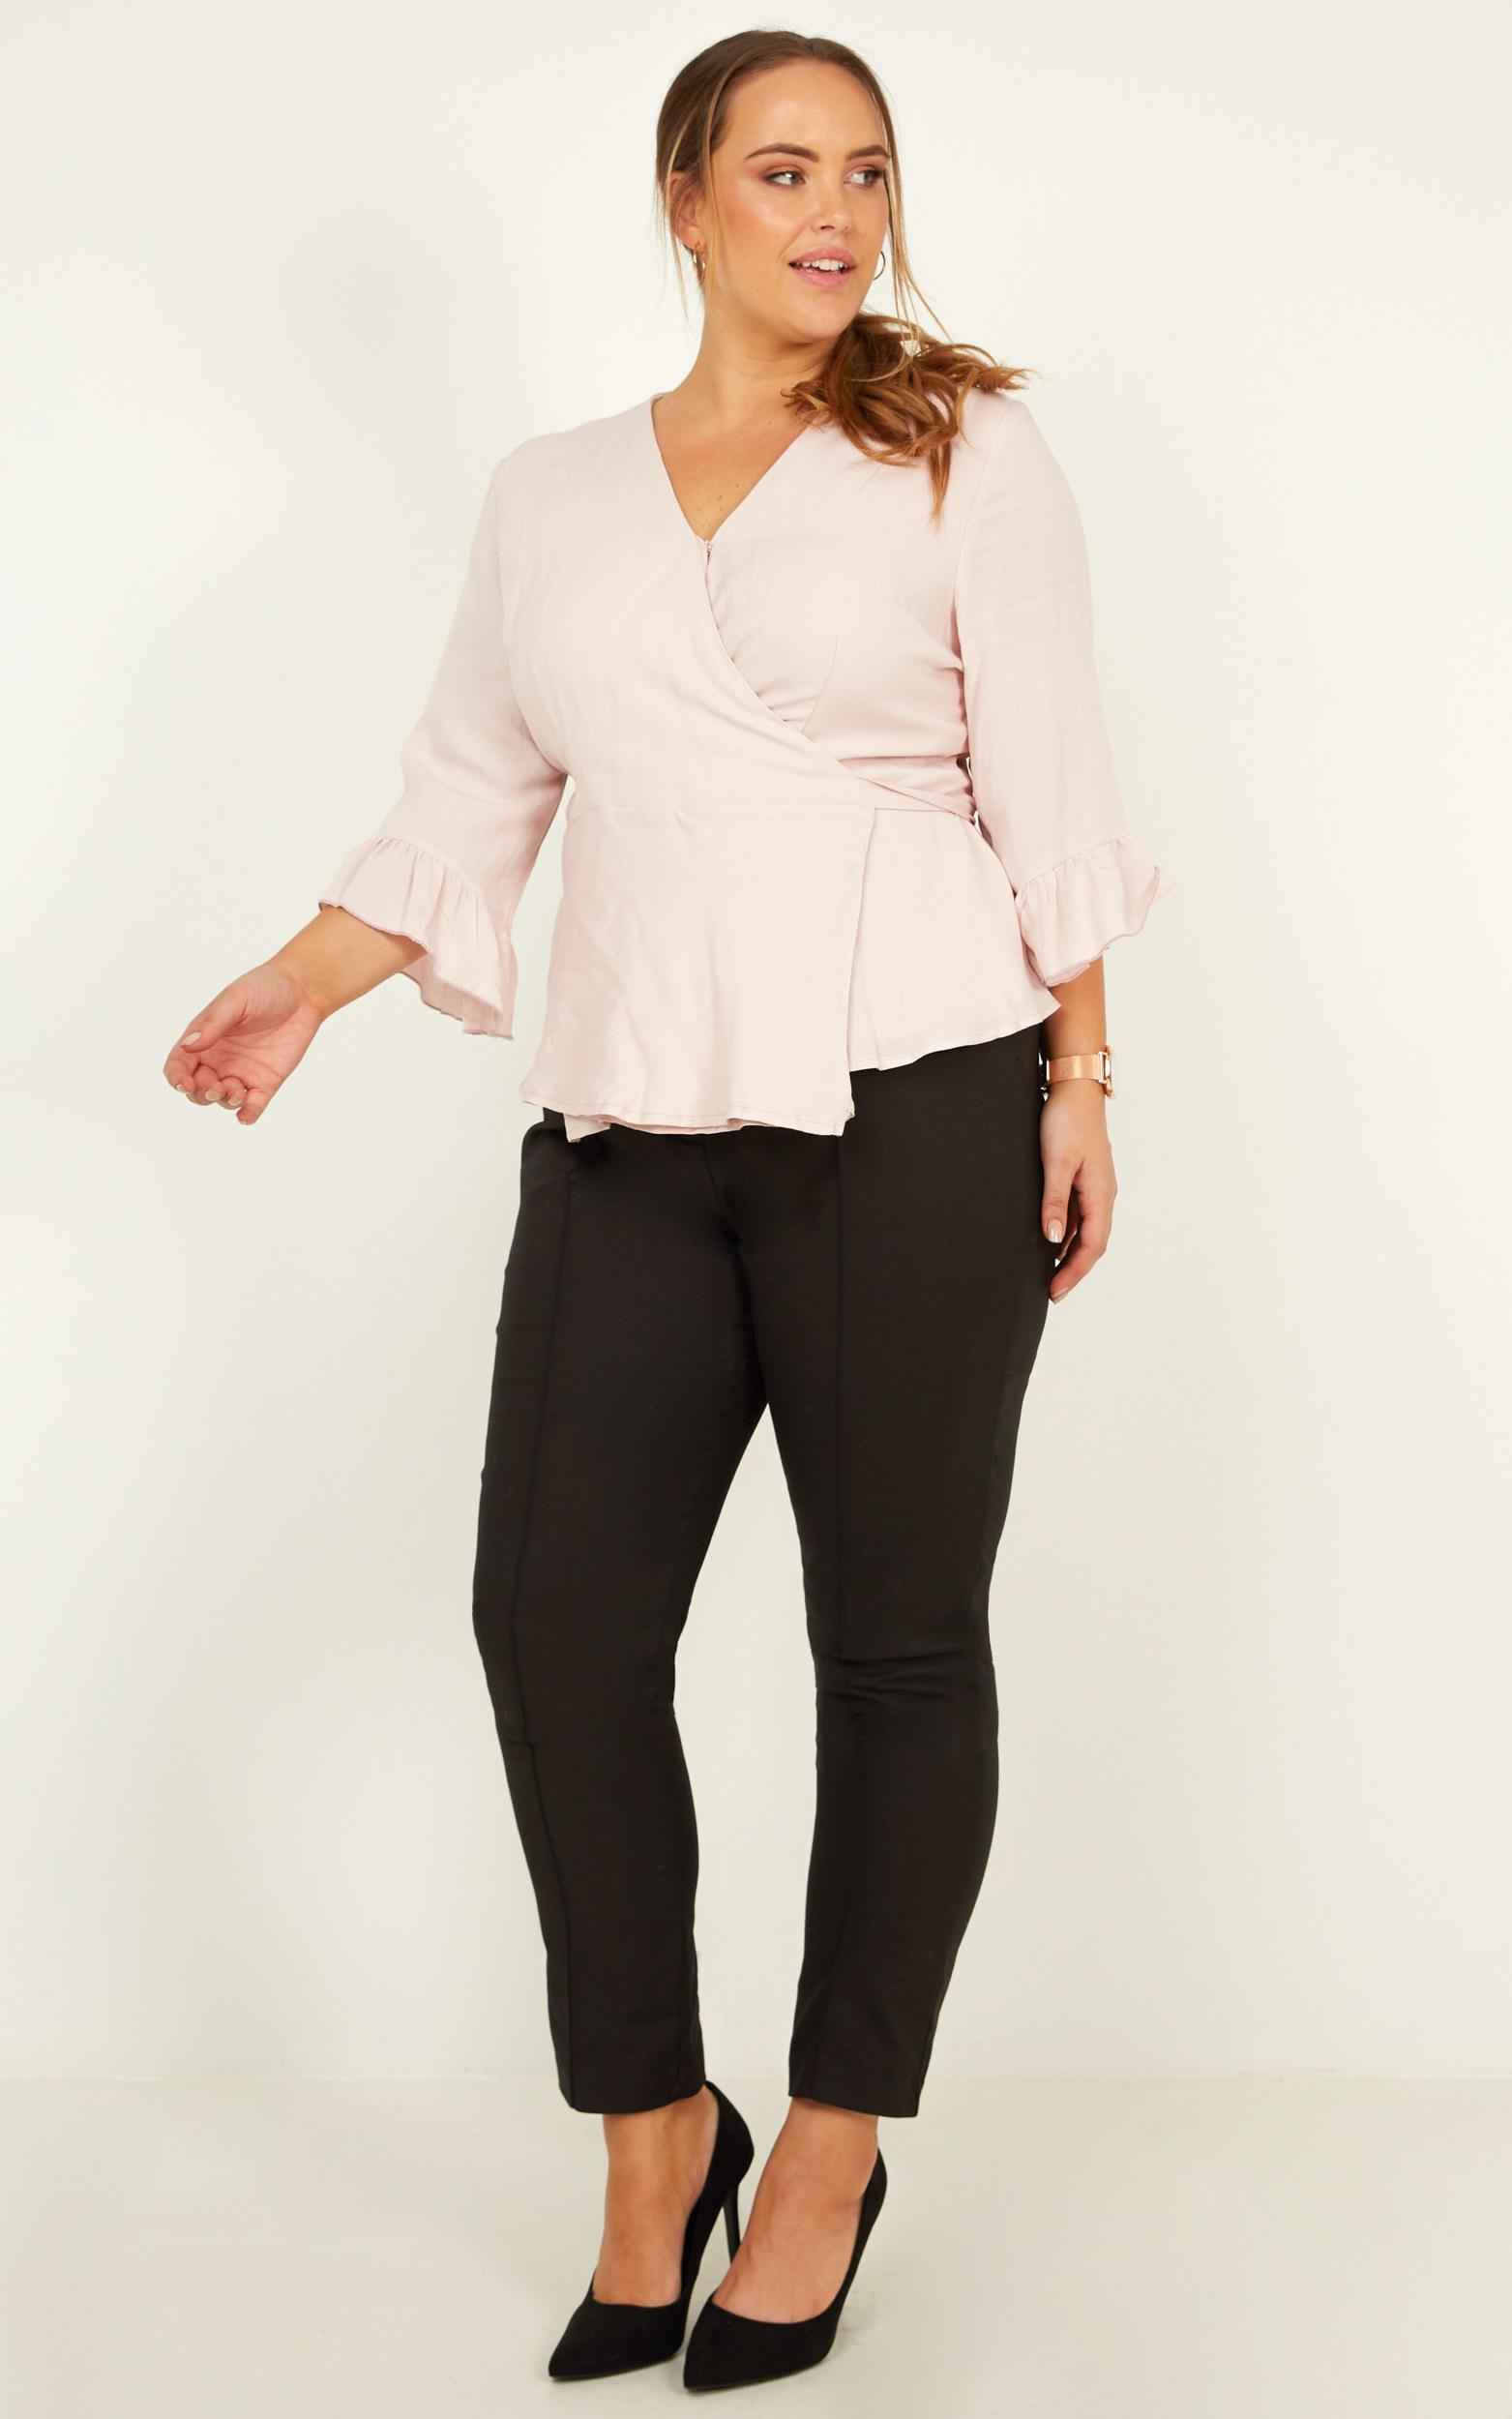 Self Made Top in blush - 20 (XXXXL), Blush, hi-res image number null